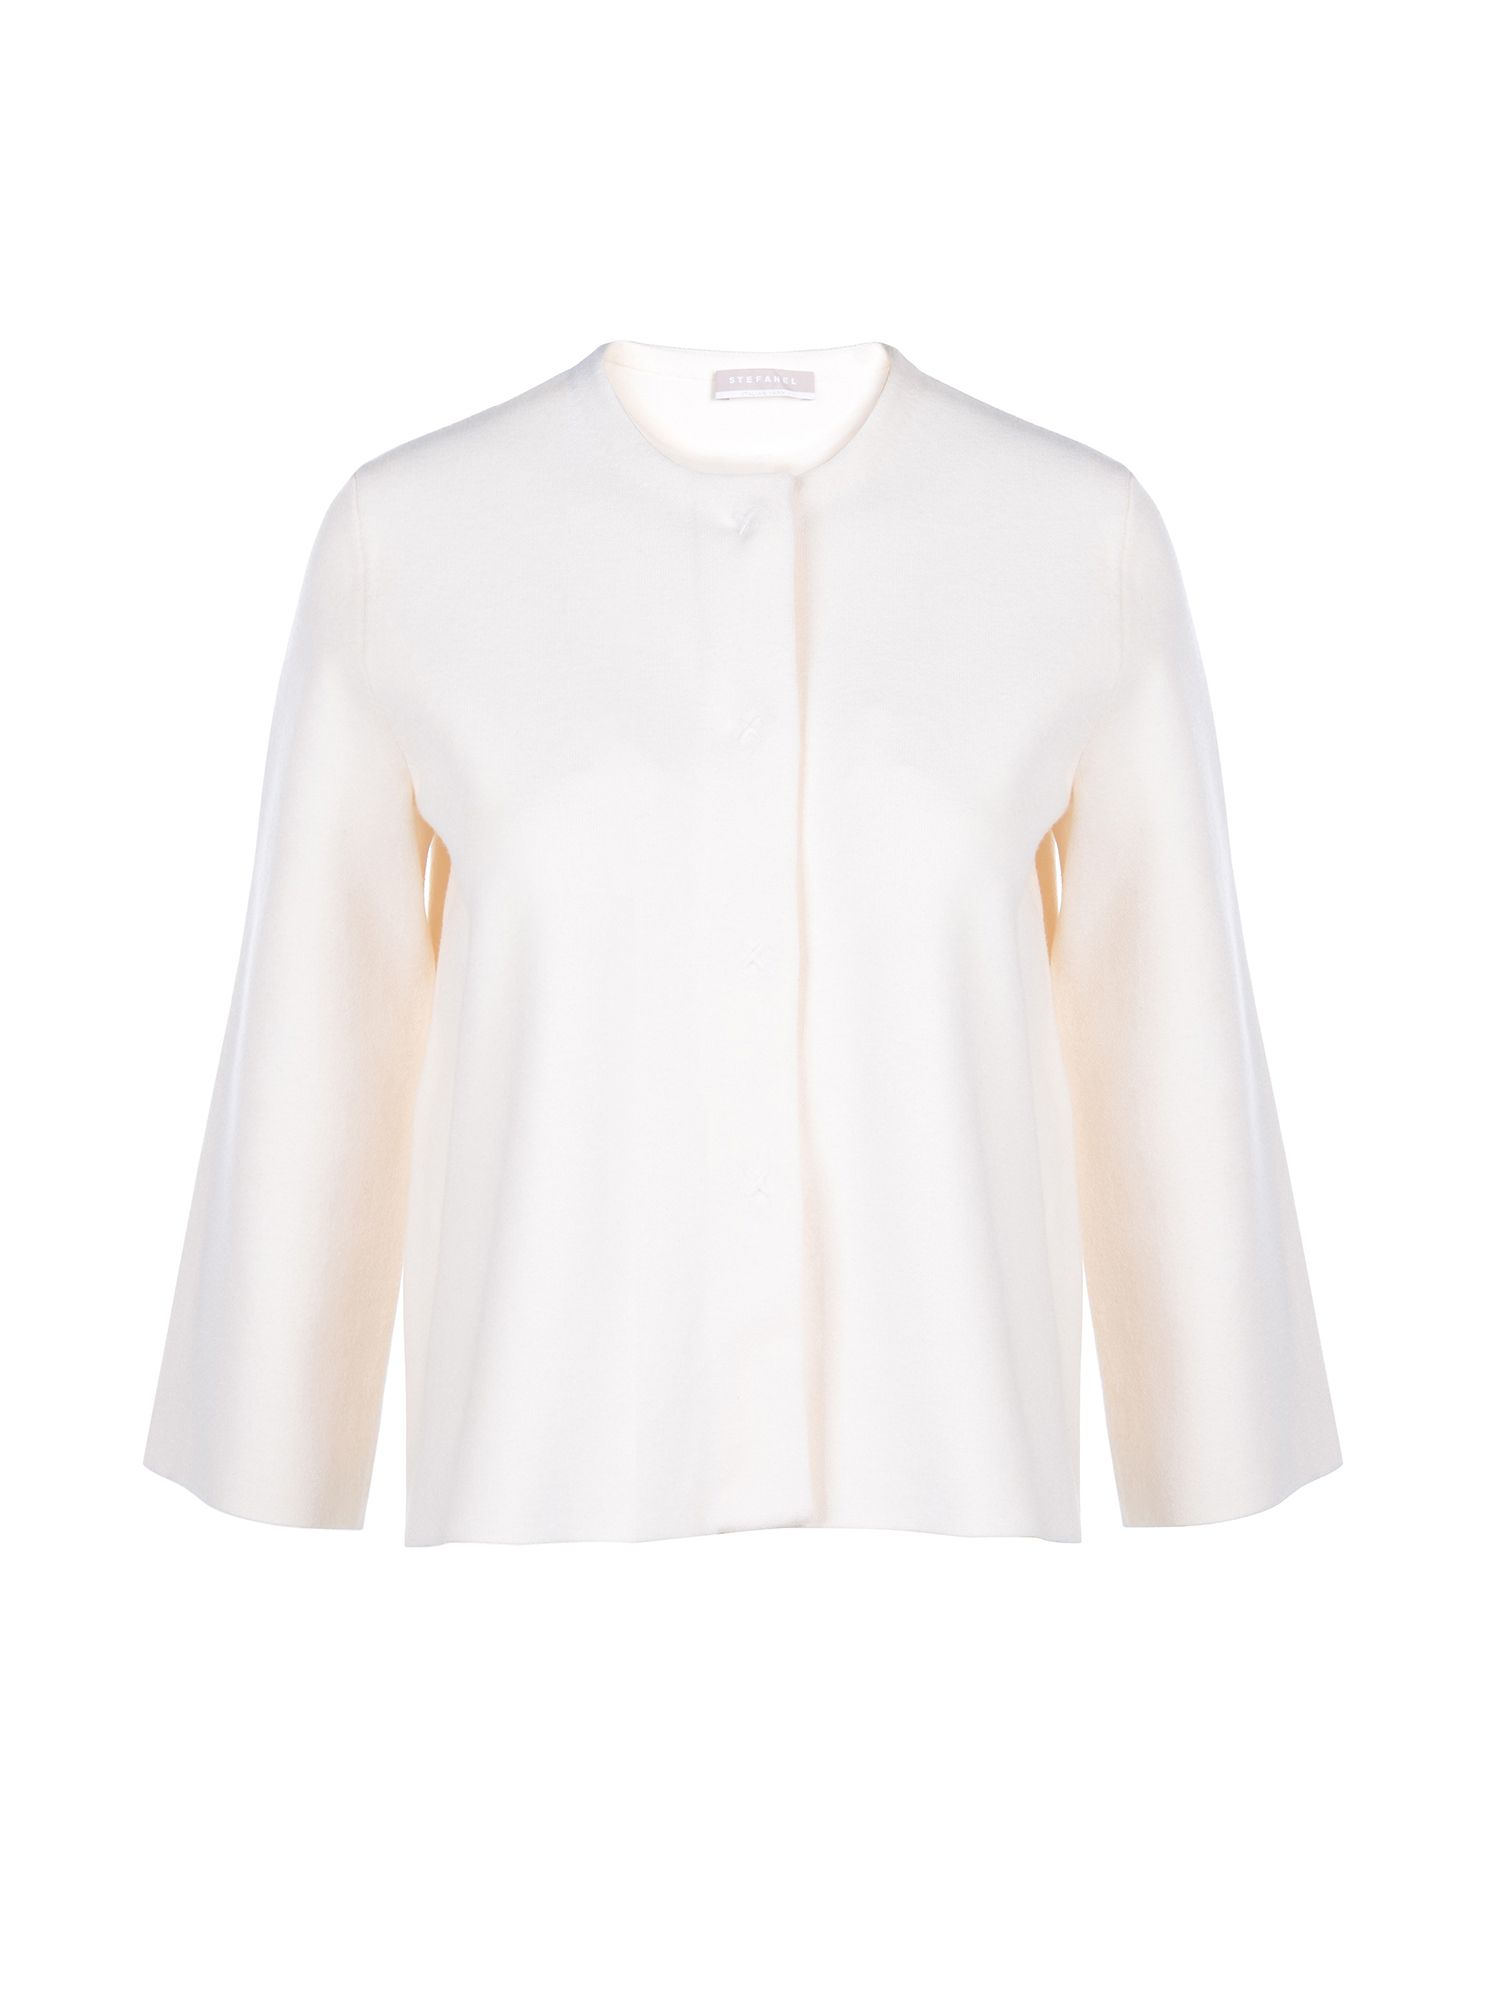 Stefanel Jacket With Mandarin Collar, Cream